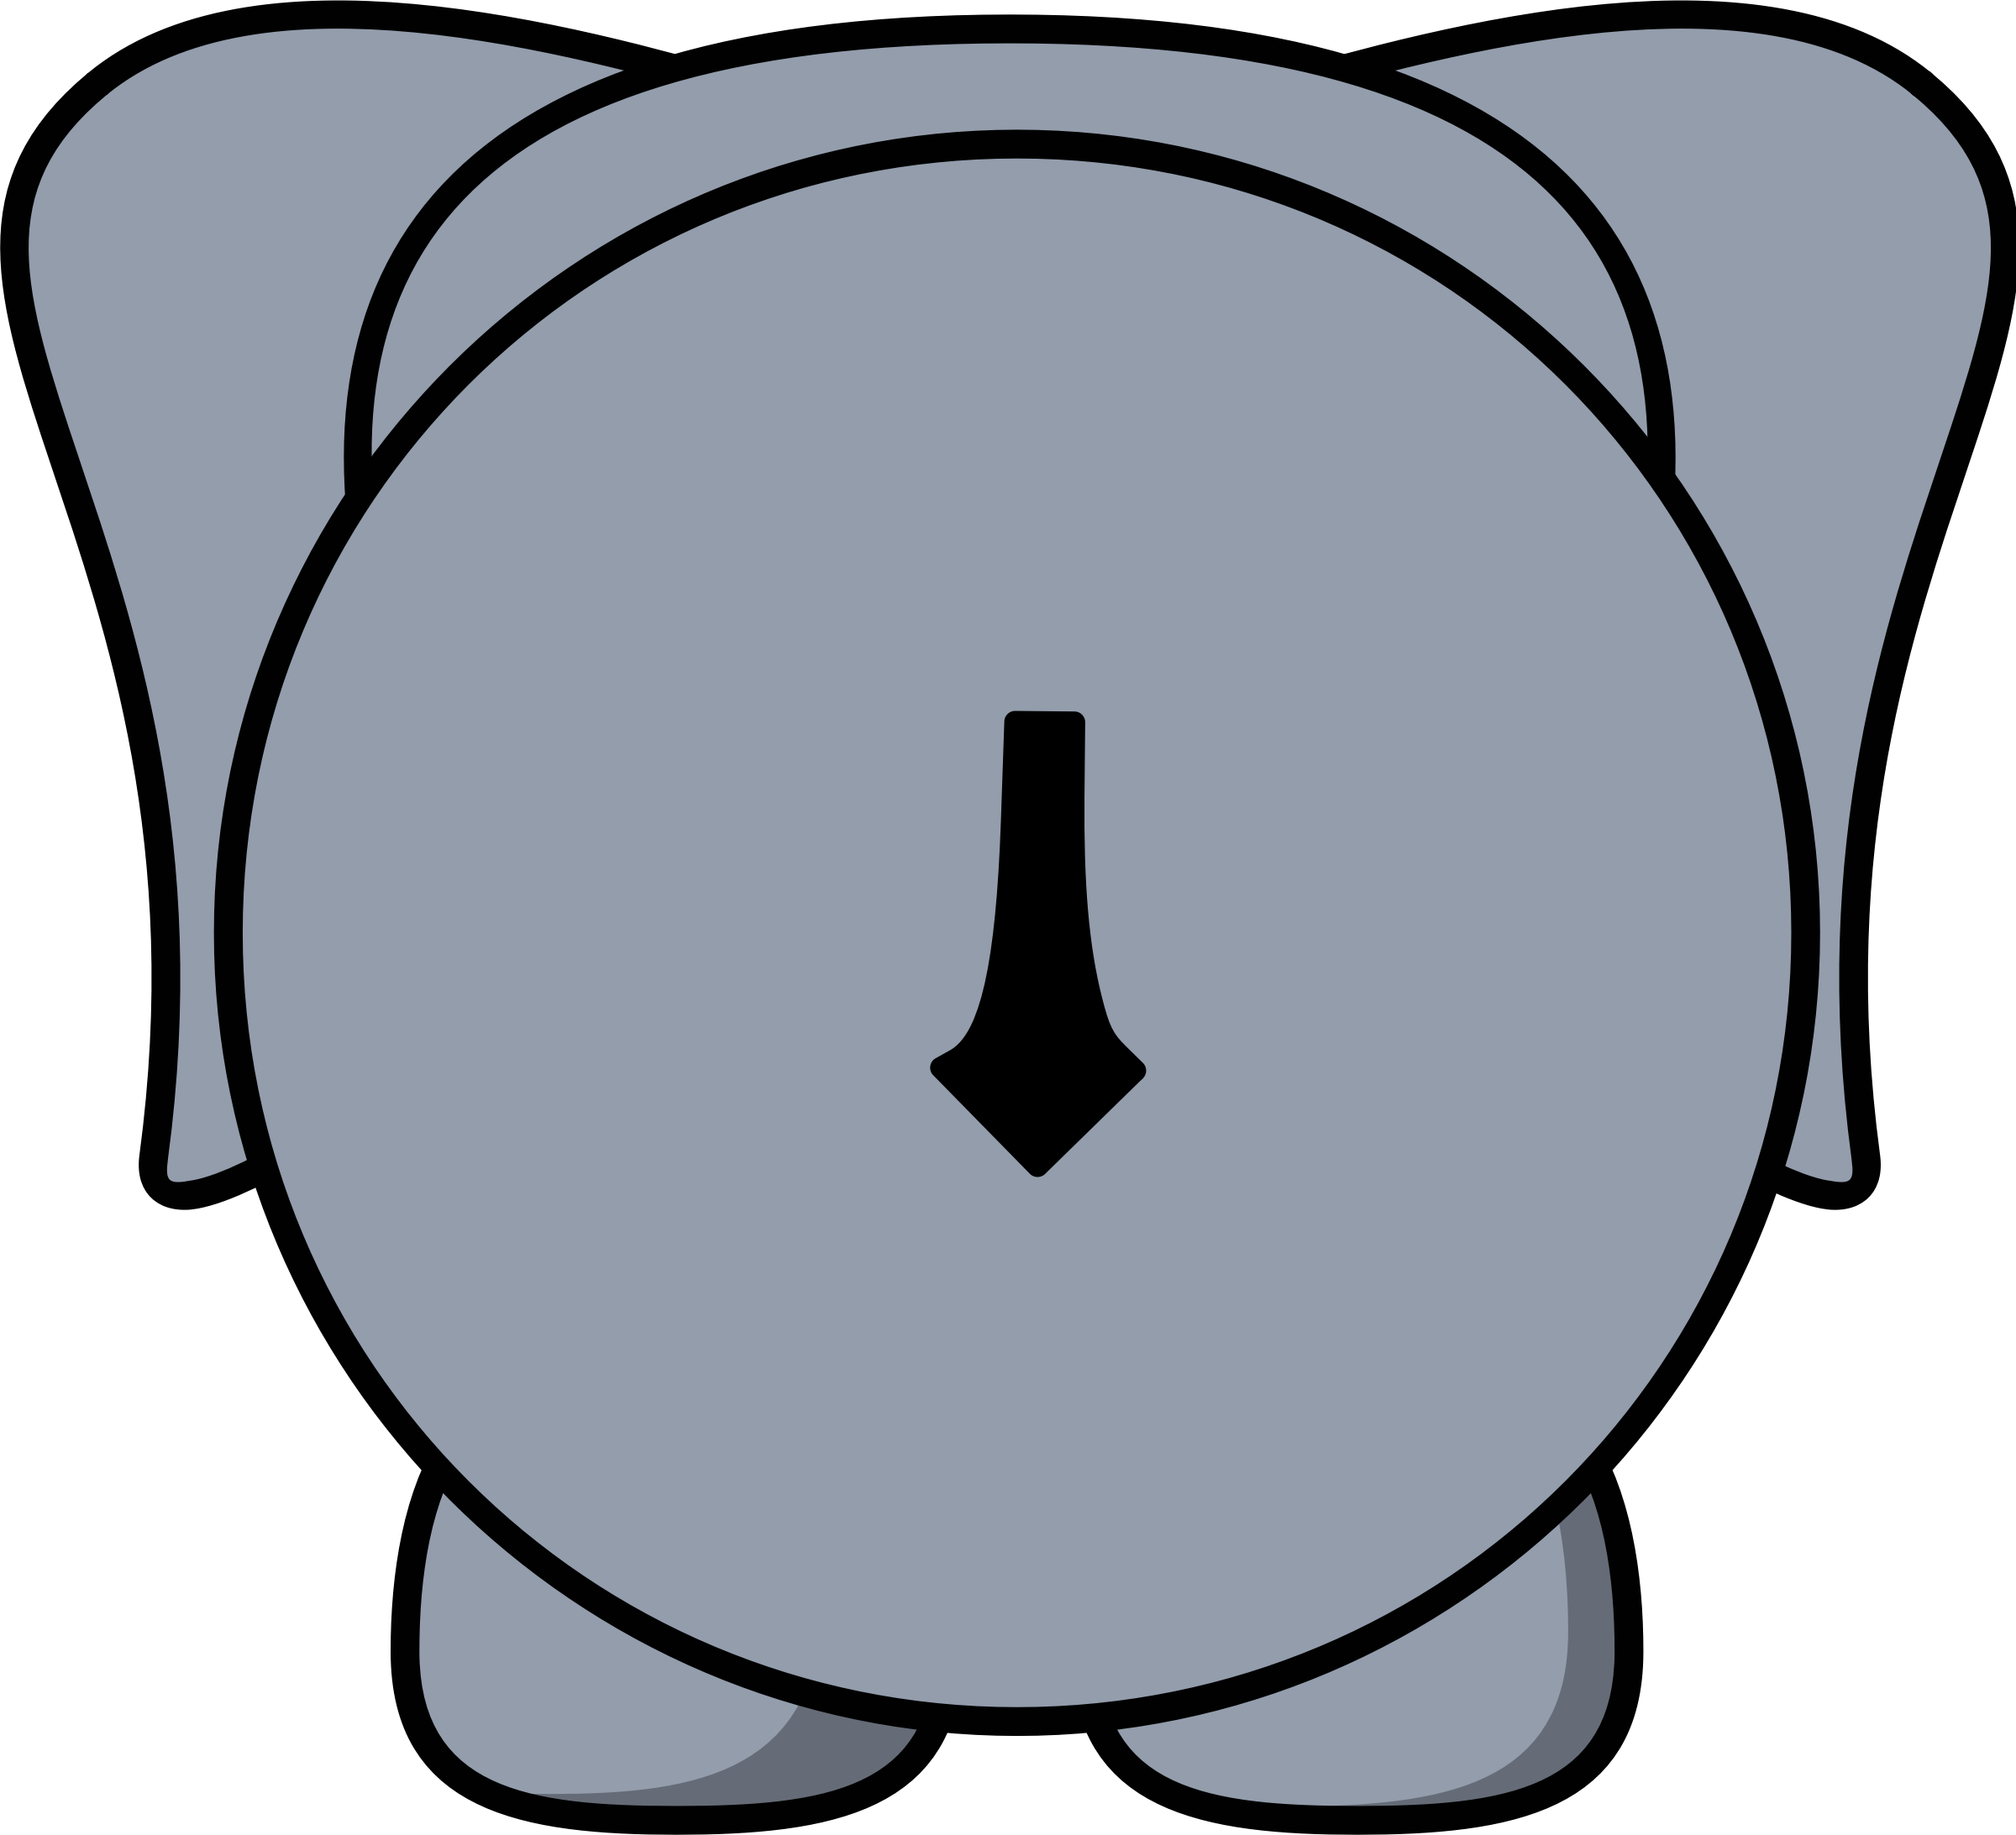 Elephant icons png free. Back clipart back side png royalty free library